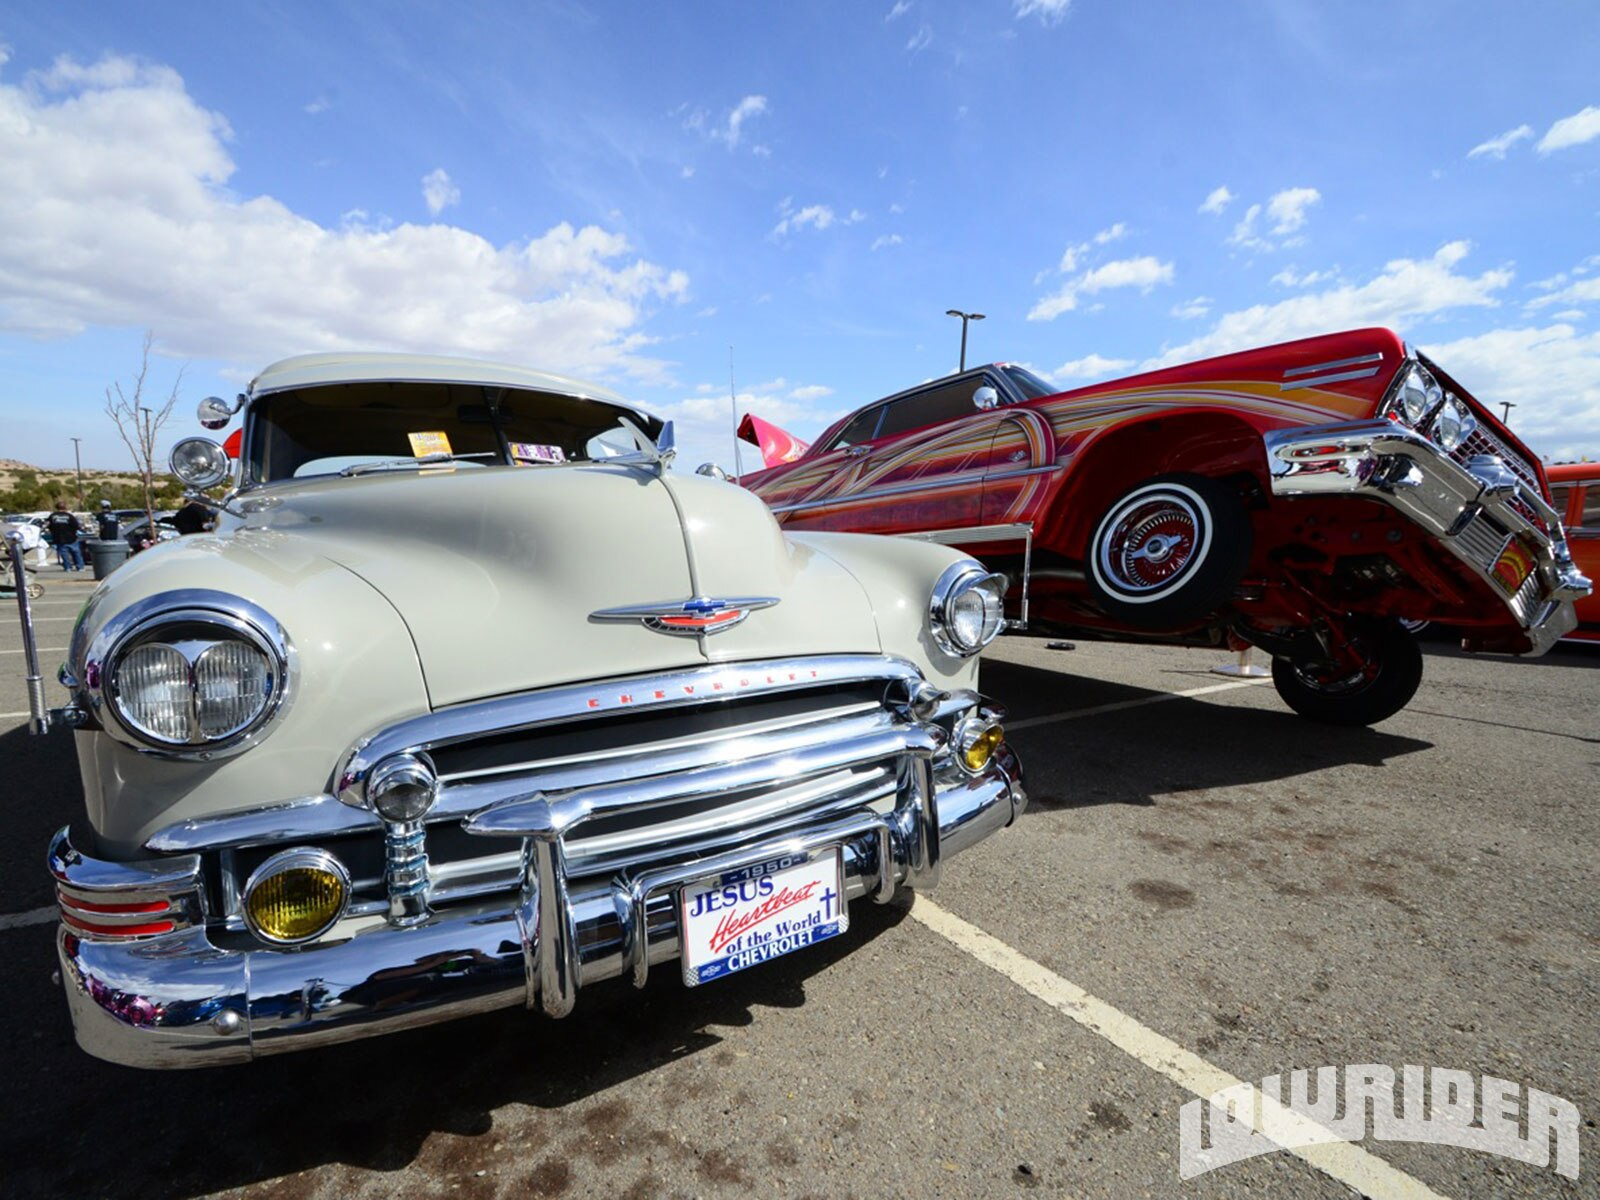 buffalo-thunder-casino-car-show-chevrolets-012